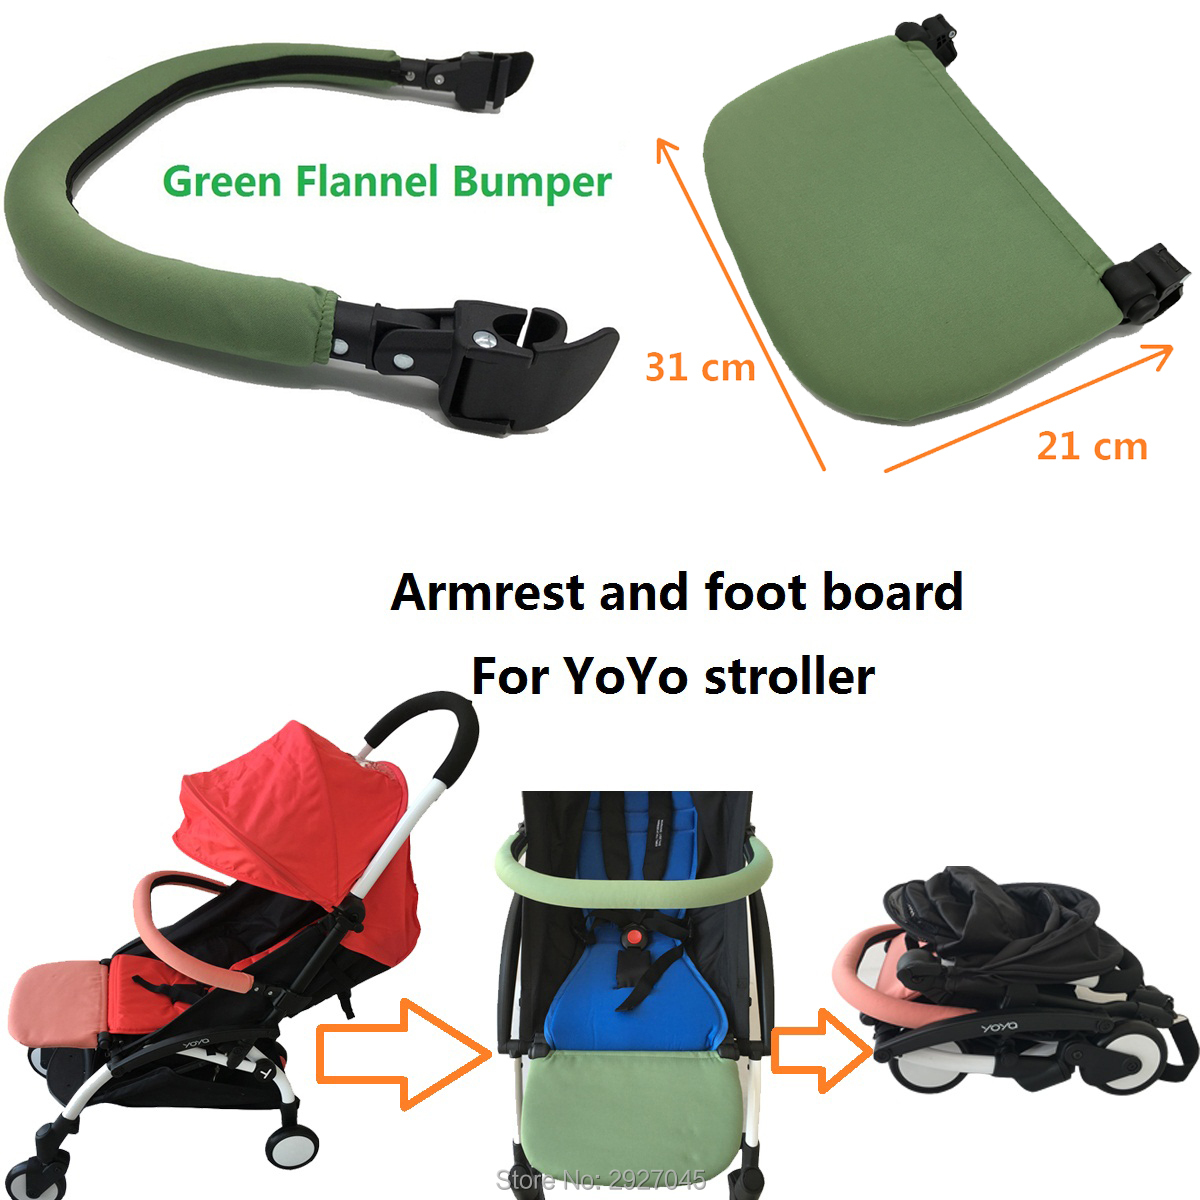 3pcs/set Stroller Accessories Pink Green Black Extend Foot Board And Armrest And Hook For Babyzen Yoyo Yoya Vovo Pram Bumper